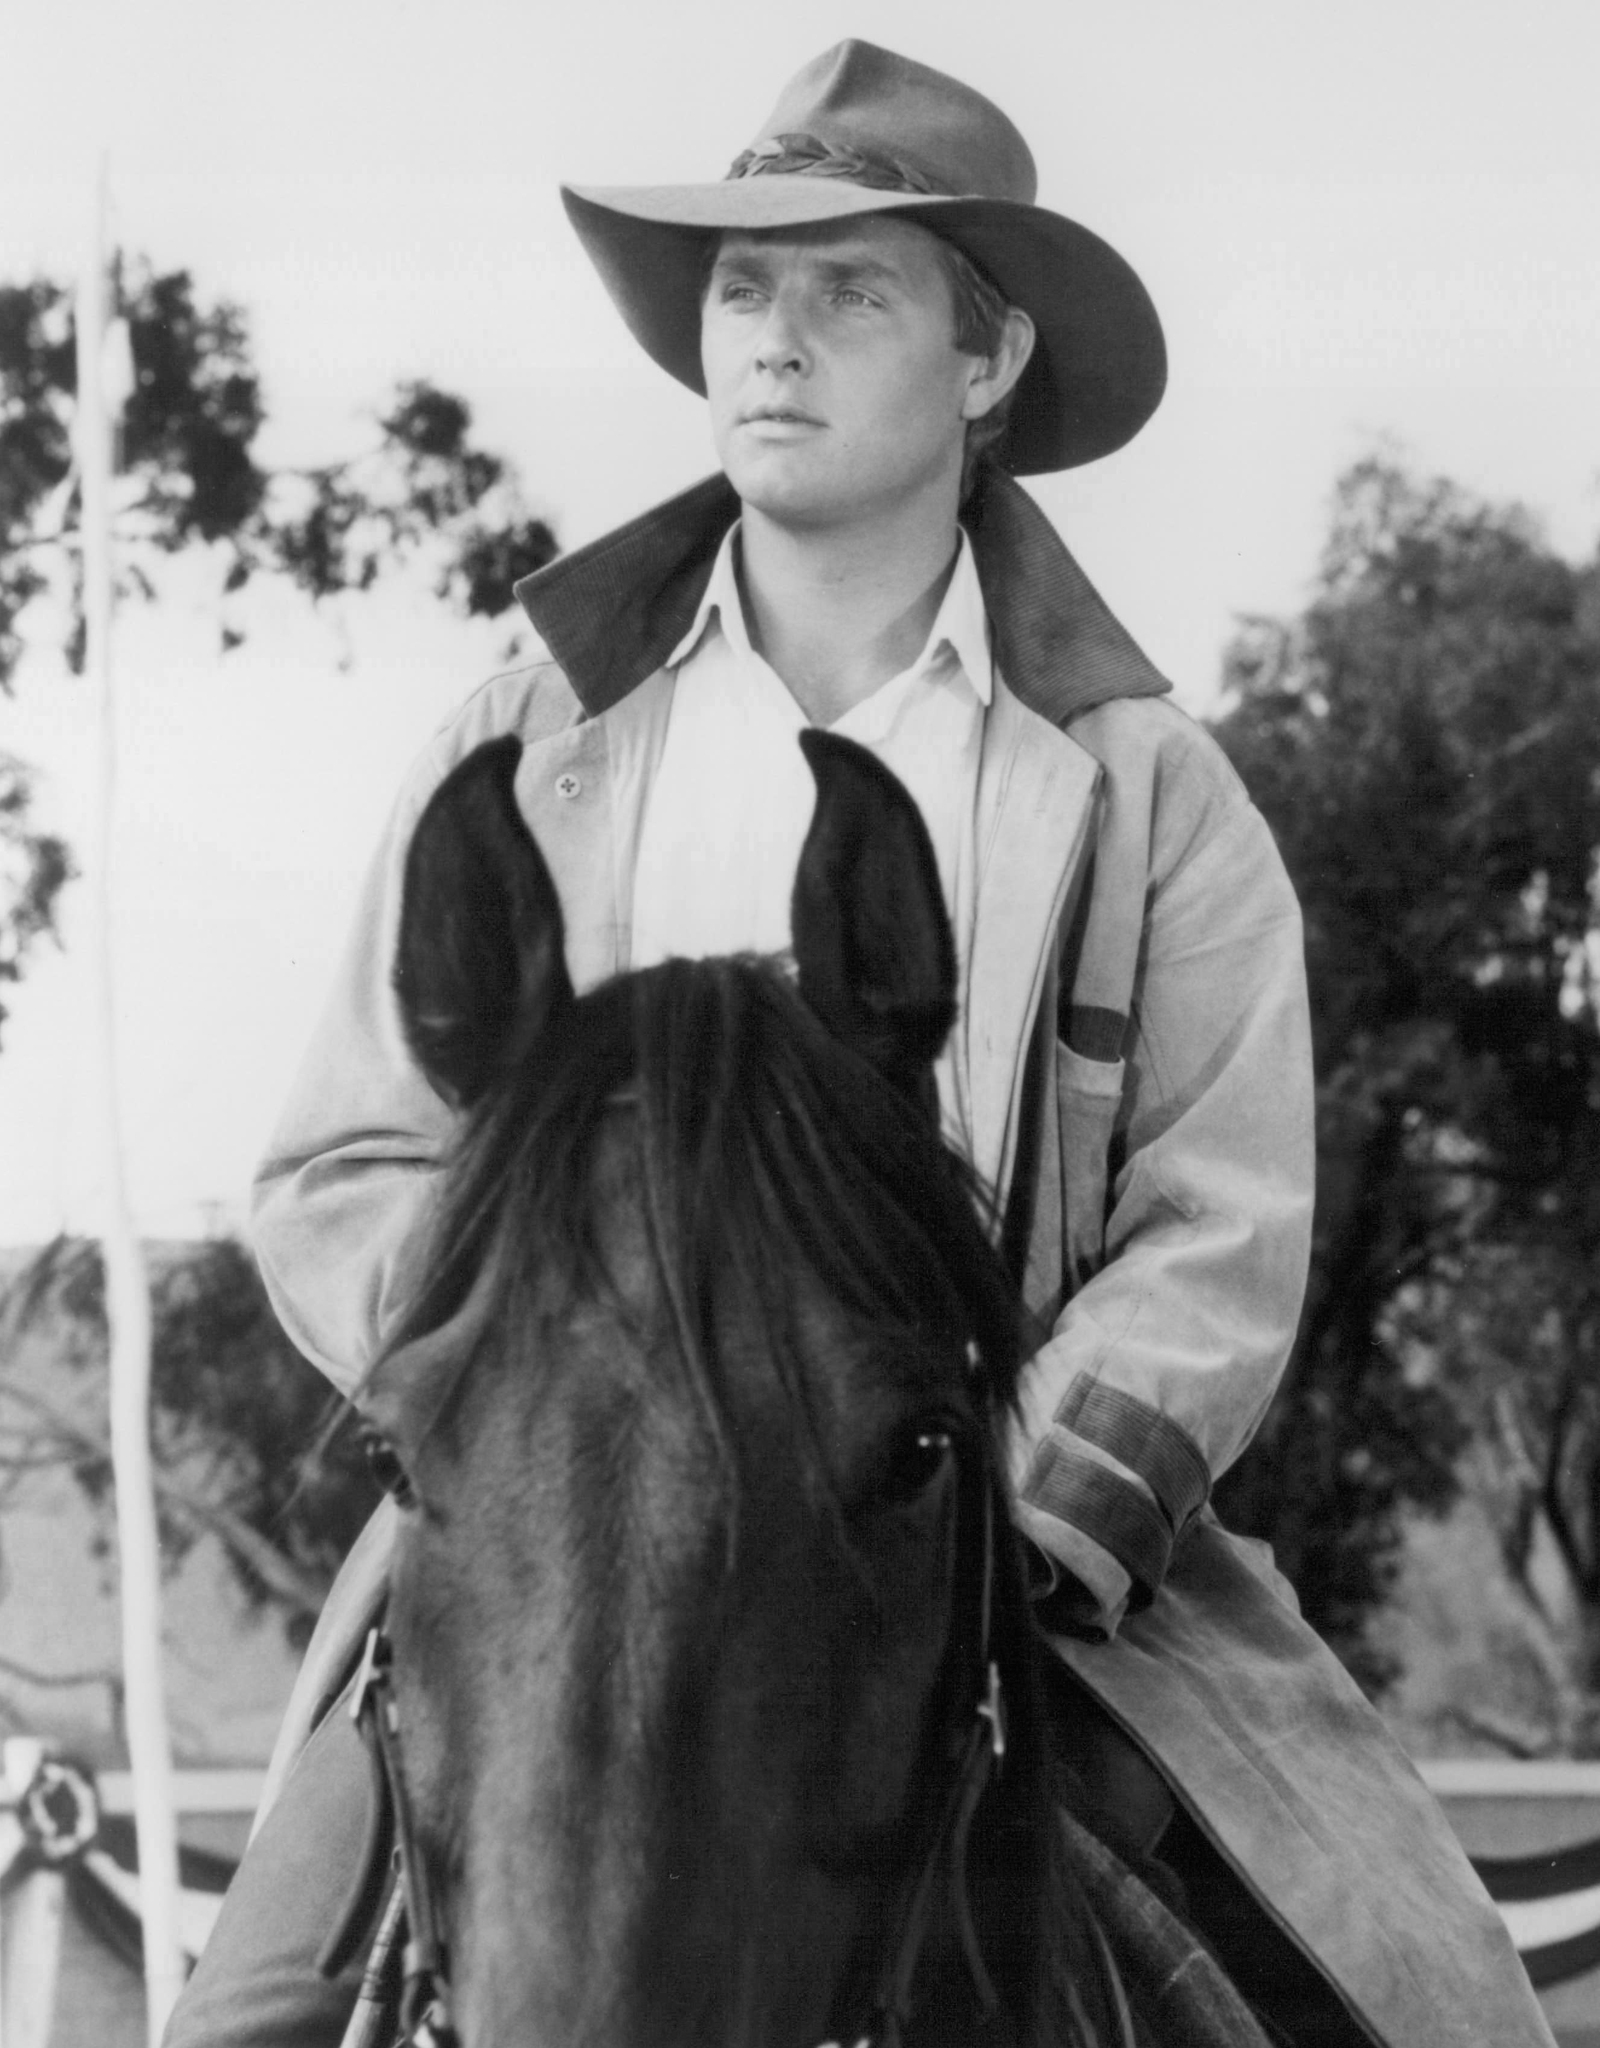 Tom Burlinson in The Man from Snowy River II (1988)